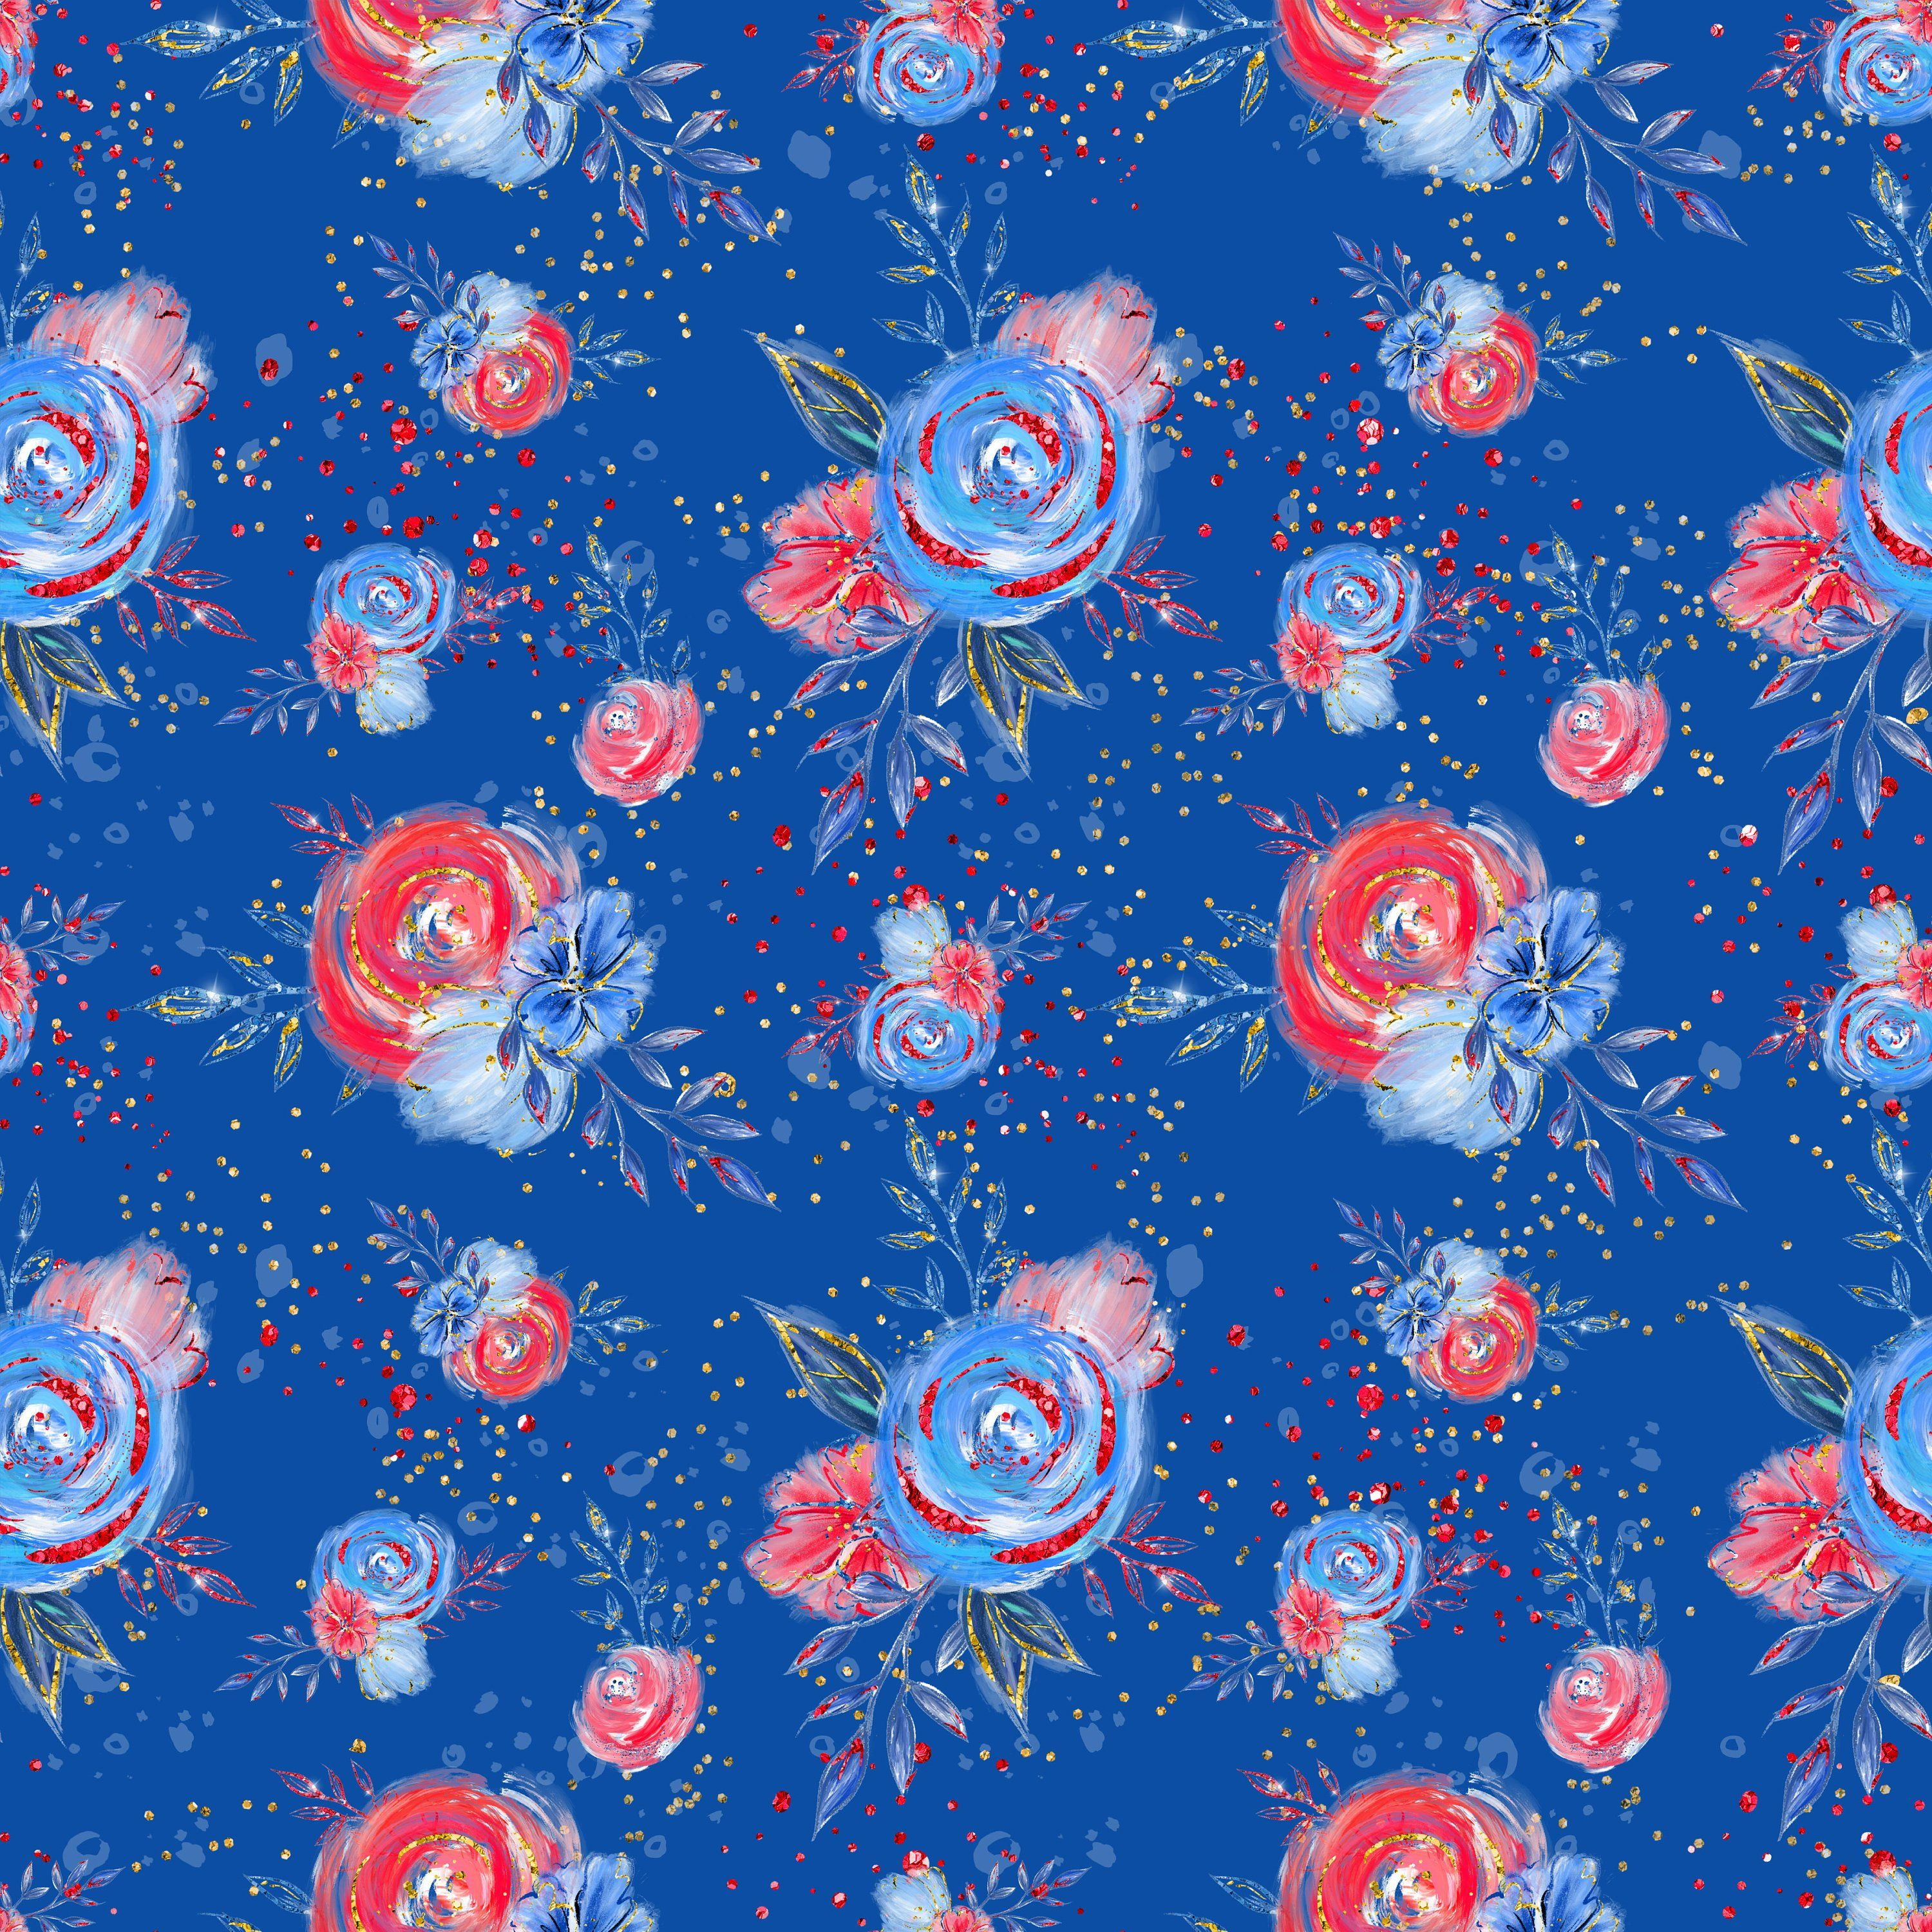 985bf23f258 Floral fabric, independence fabric, 4th of July fabric, cotton fabric, knit  fabric, fabric by the yard, flower fabric, fourth of July, roses